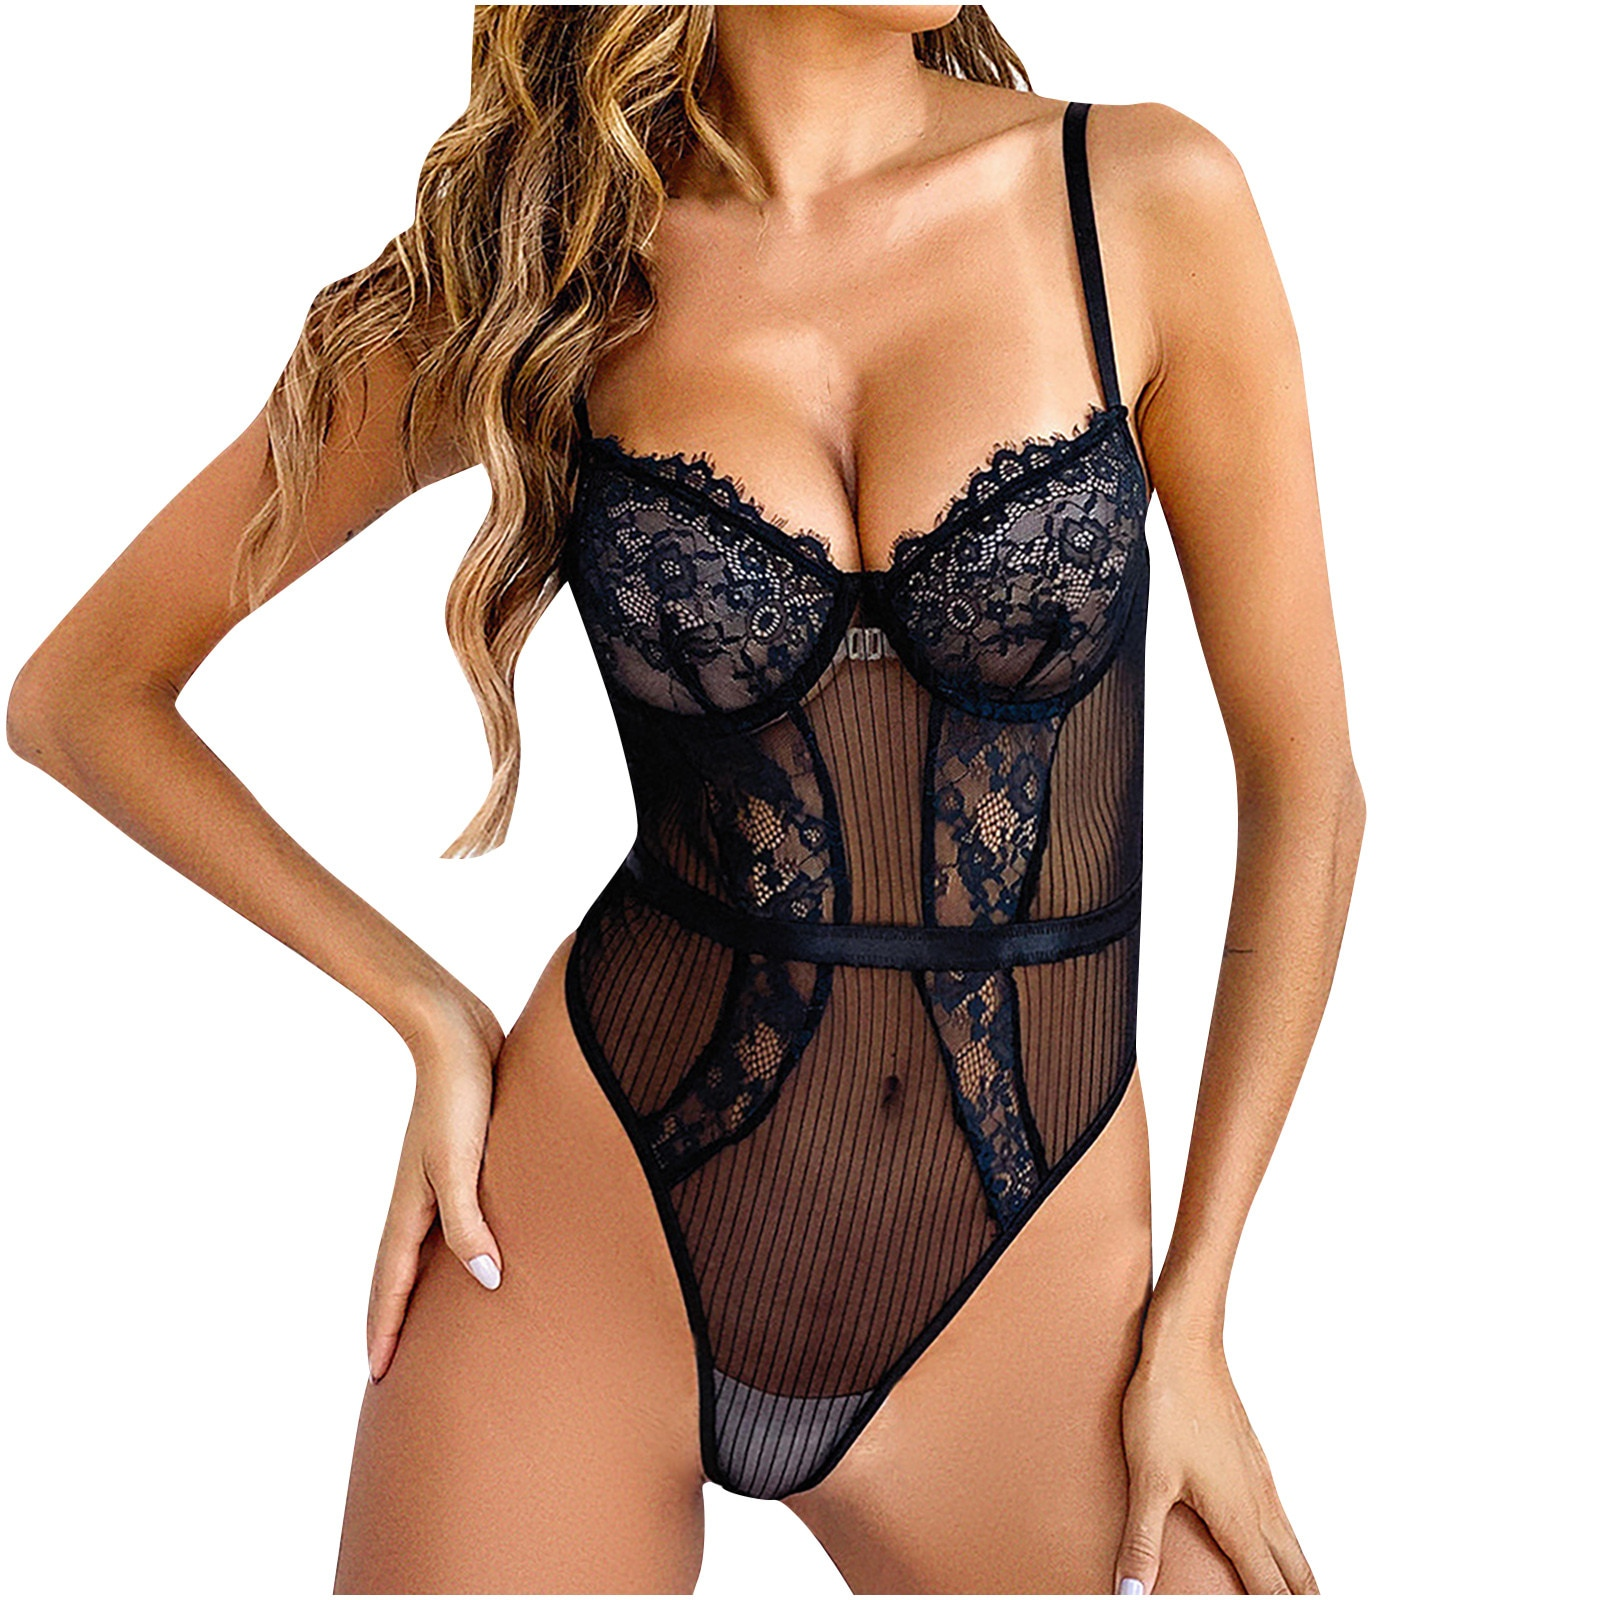 Floral Lace Embroidery Bodysuit Women Sexy Lingerie Mesh Perspective Body Suit Mujer Fashion Mesh Skinny Bodysuits Jumpsuit